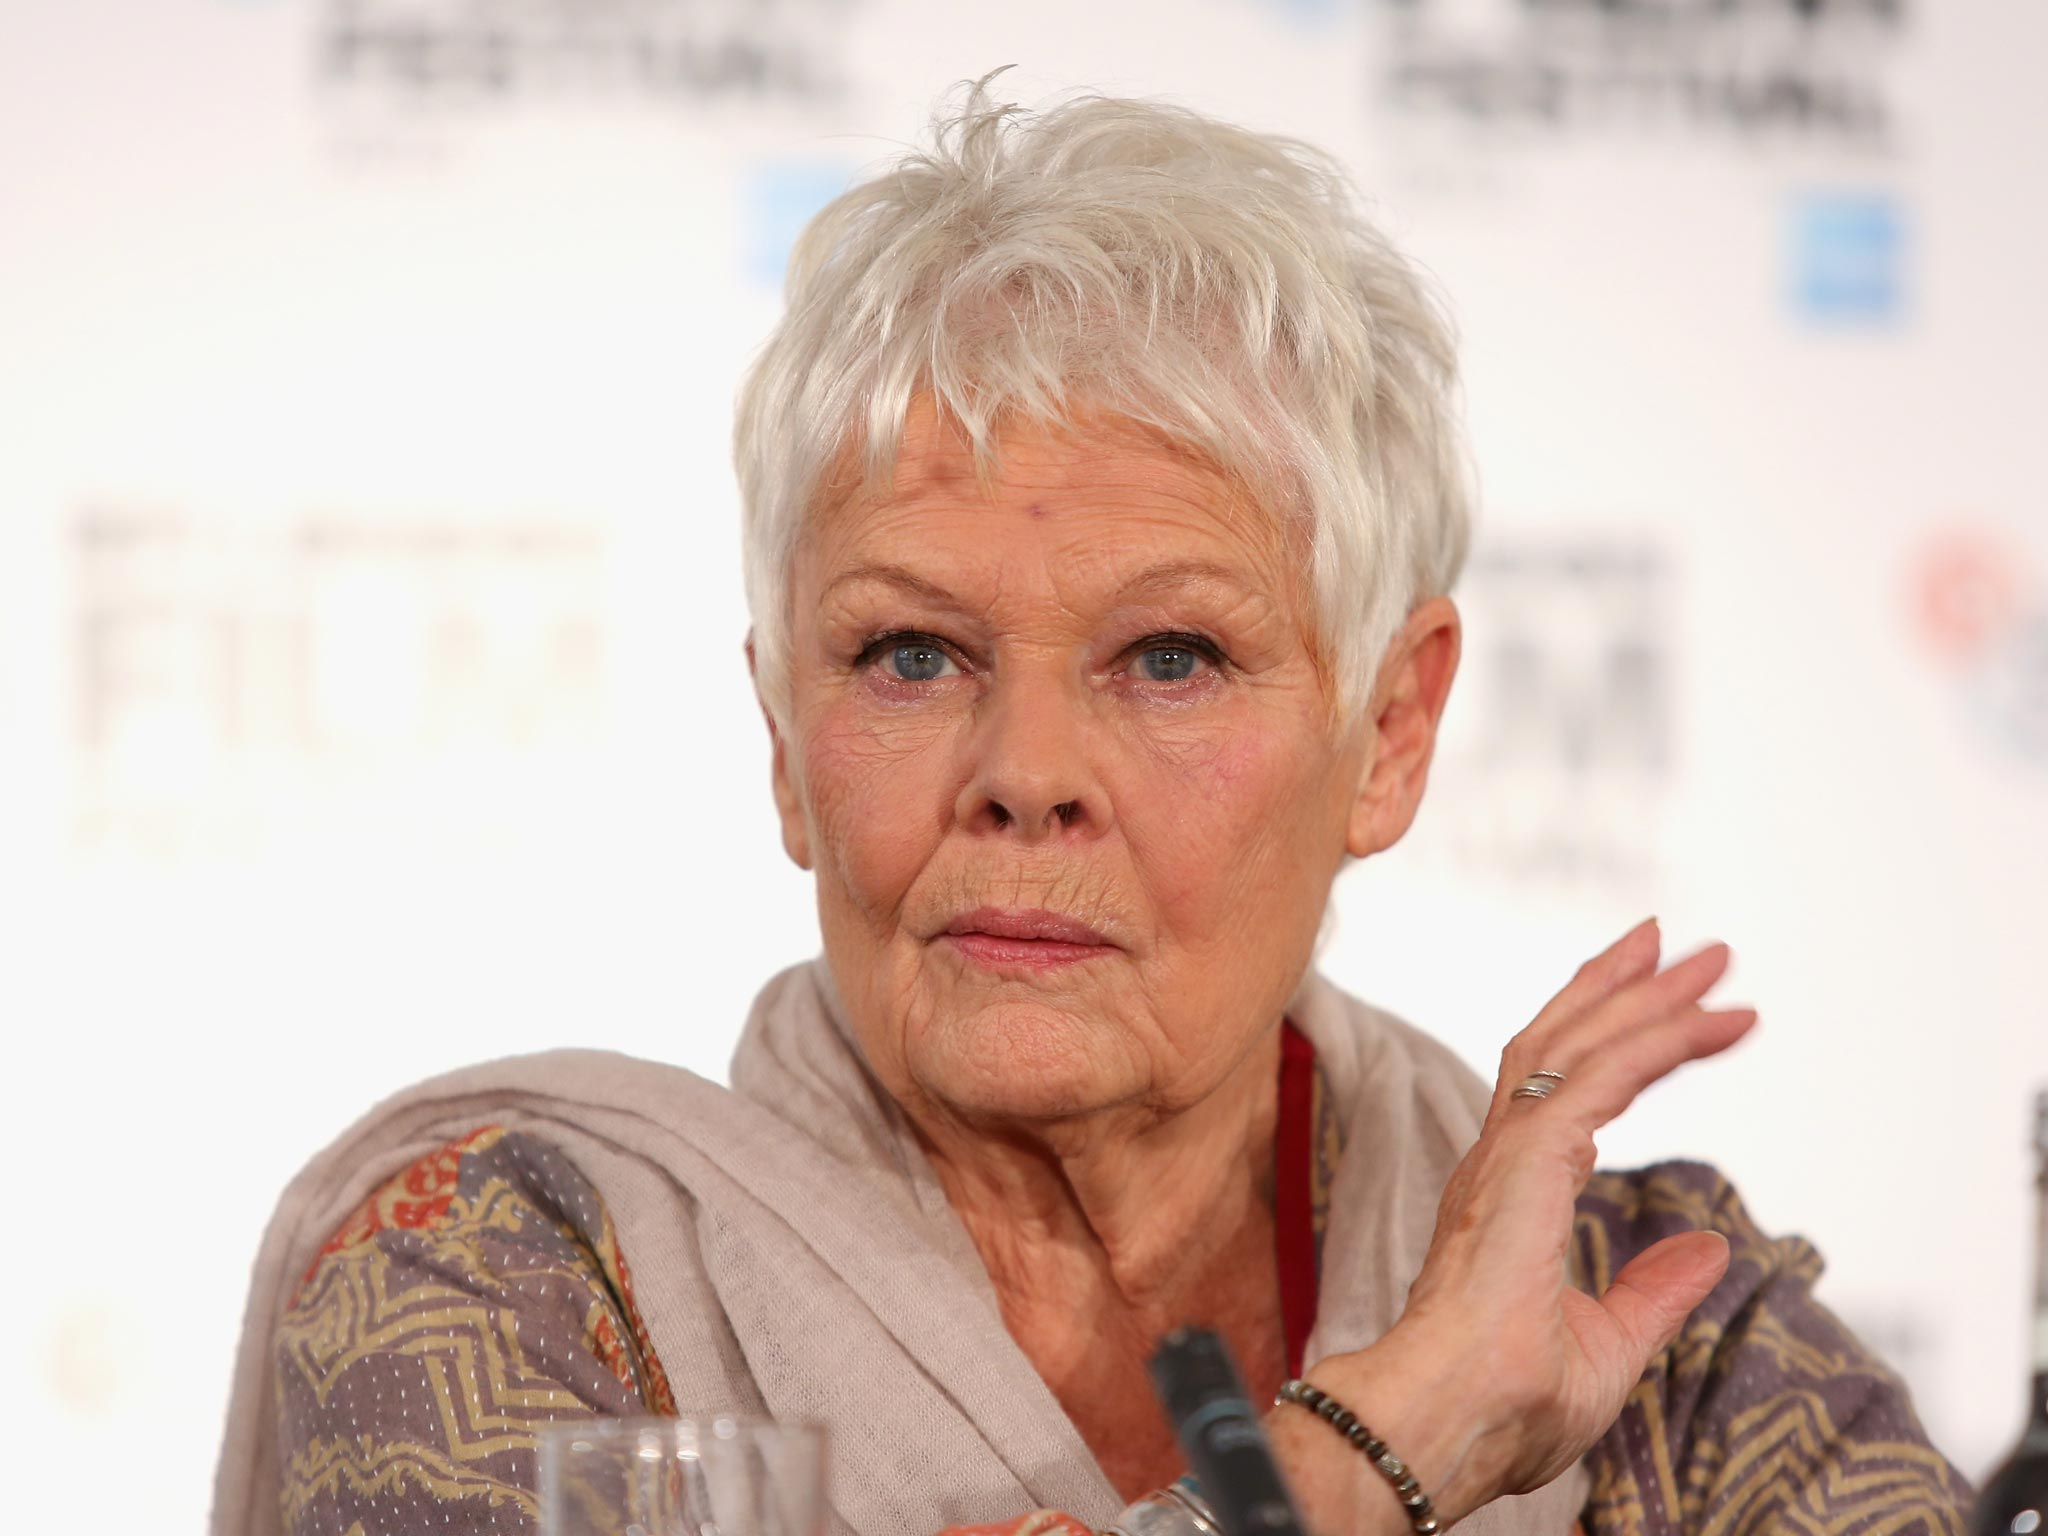 judi dench star warsjudi dench young, judi dench harry potter, judi dench played m, judi dench die another day, judi dench films, judi dench is scottish, judi dench james bond, judi dench 2016, judi dench first film, judi dench oscar, judi dench actor biography, judi dench hamlet, judi dench movies, judi dench cabaret, judi dench maggie smith, judi dench queen, judi dench 1990, judi dench star wars, judi dench nationality, judi dench latest news